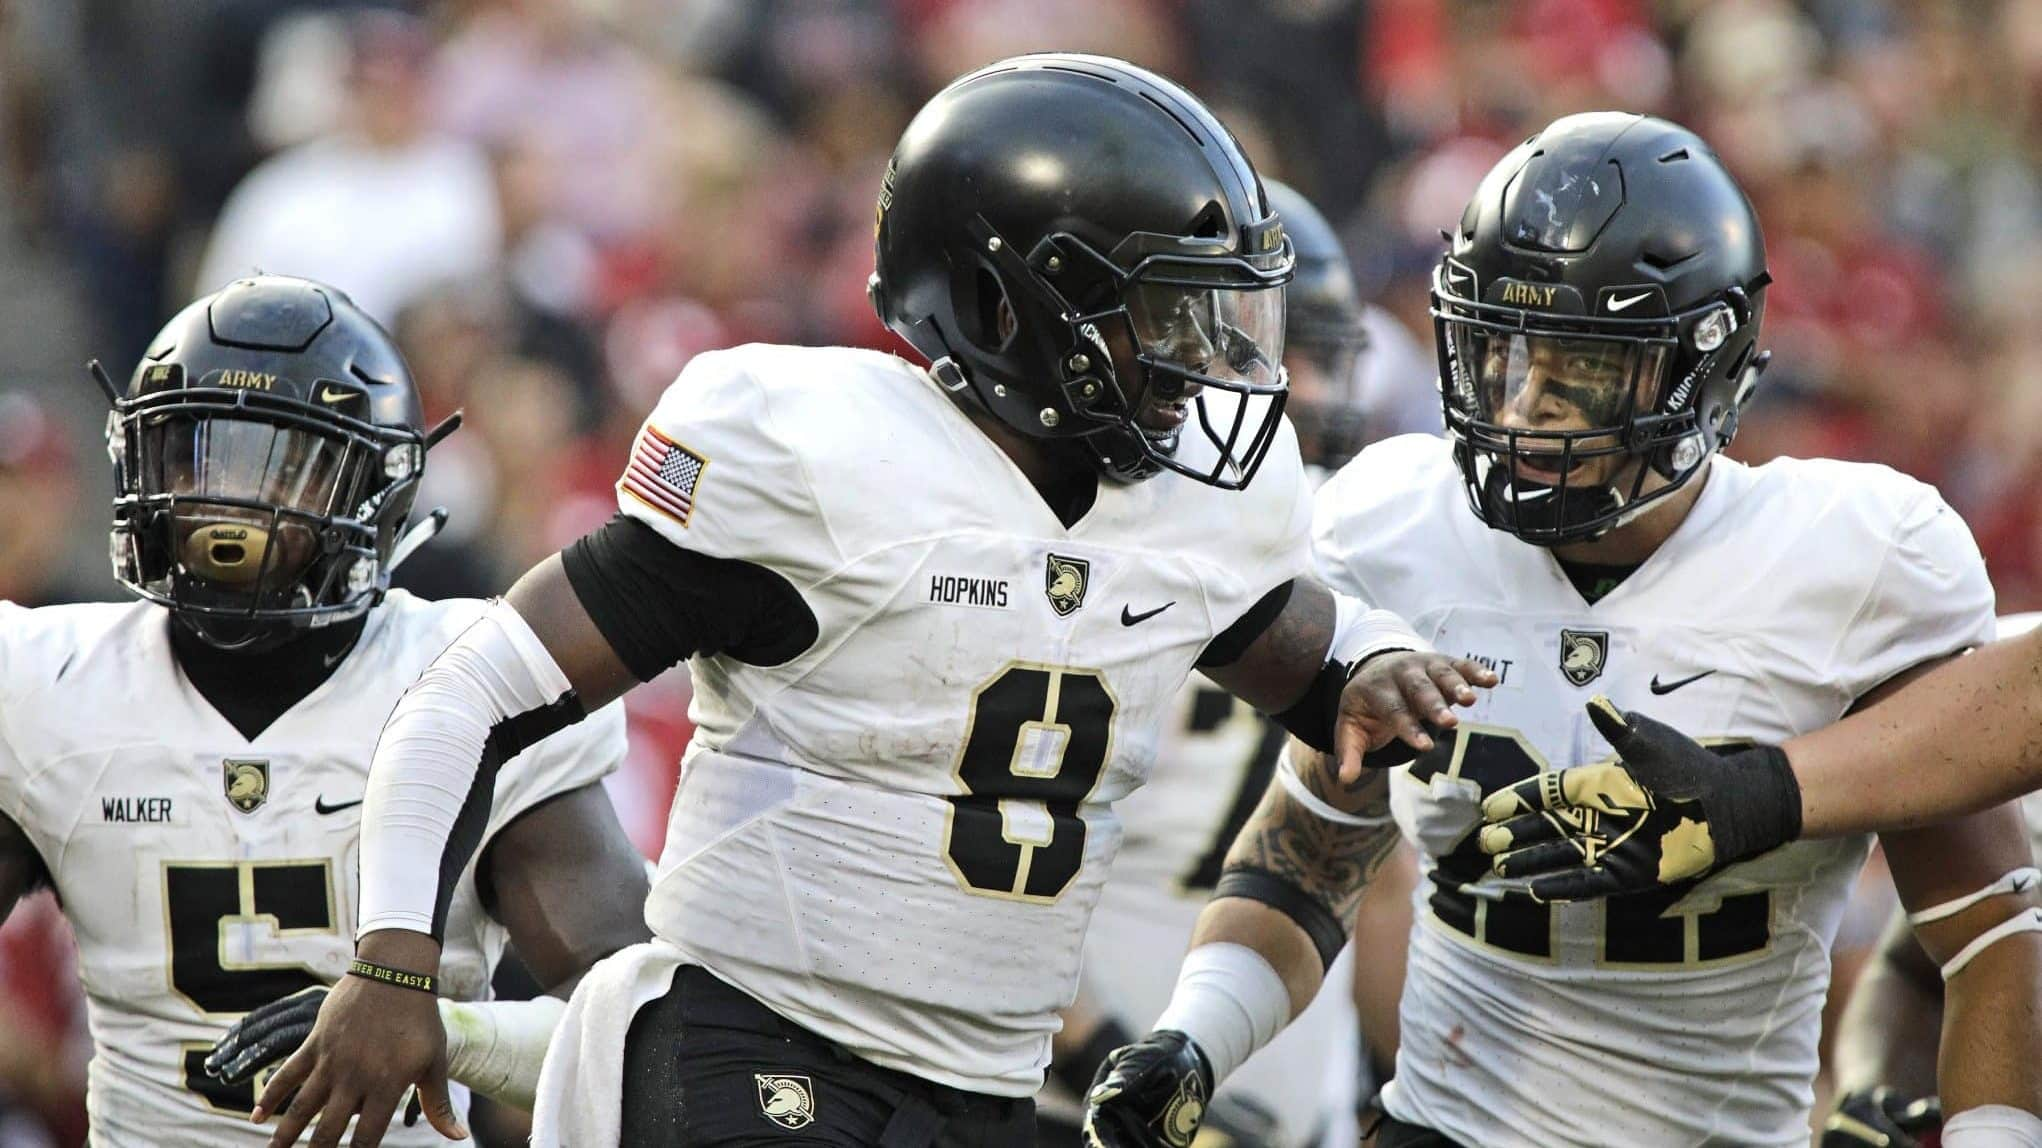 Army Football: Return to West Point brings chance to further